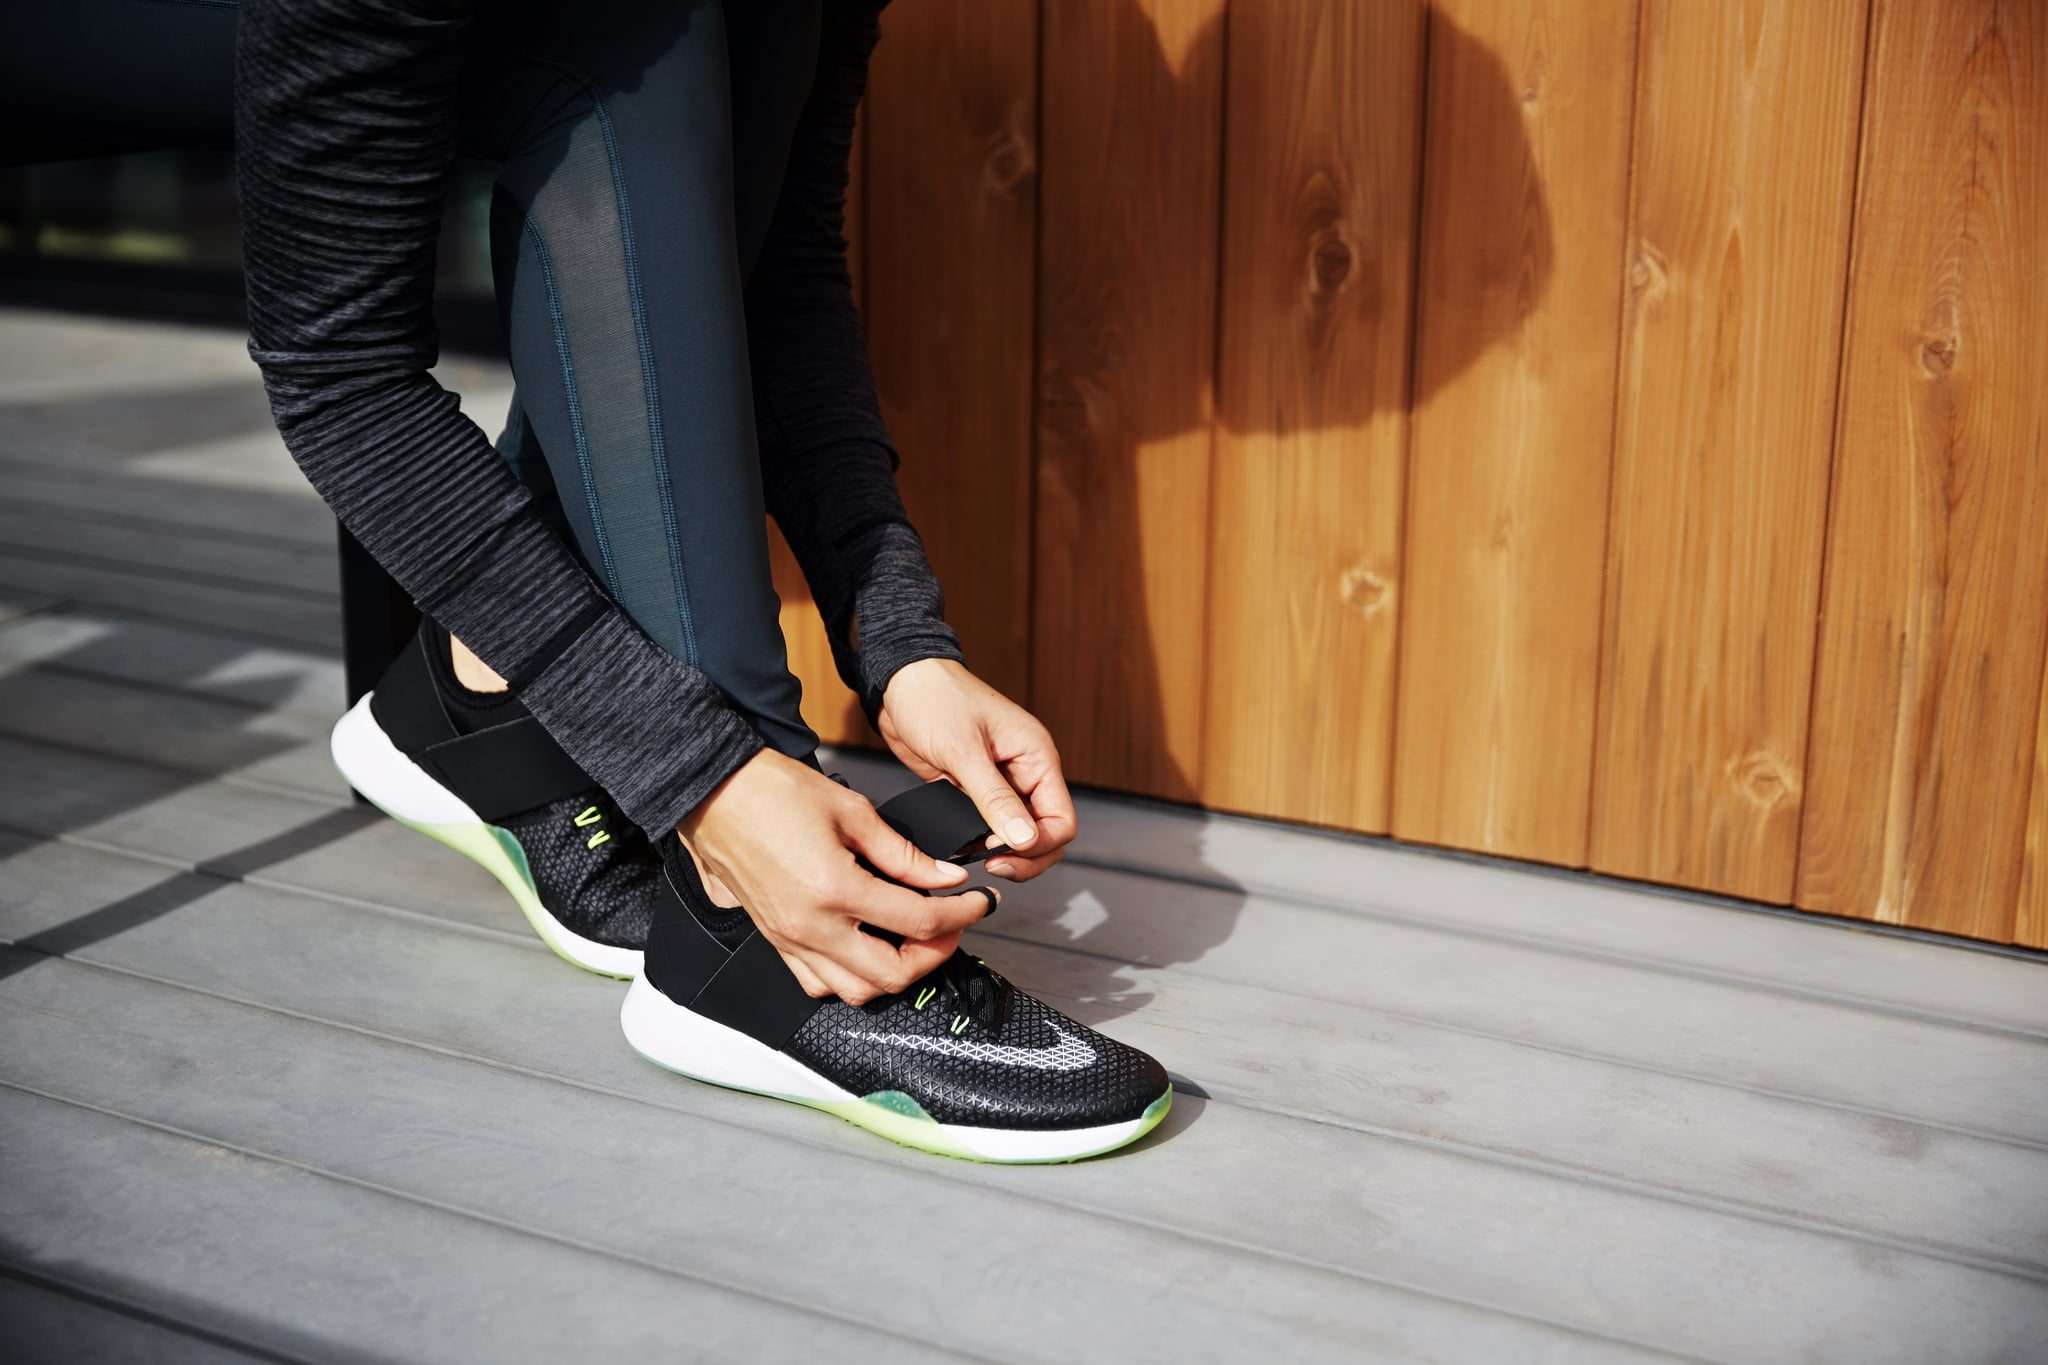 Need a New Pair of Running Shoes? 2 Experts Tell You What to Look For